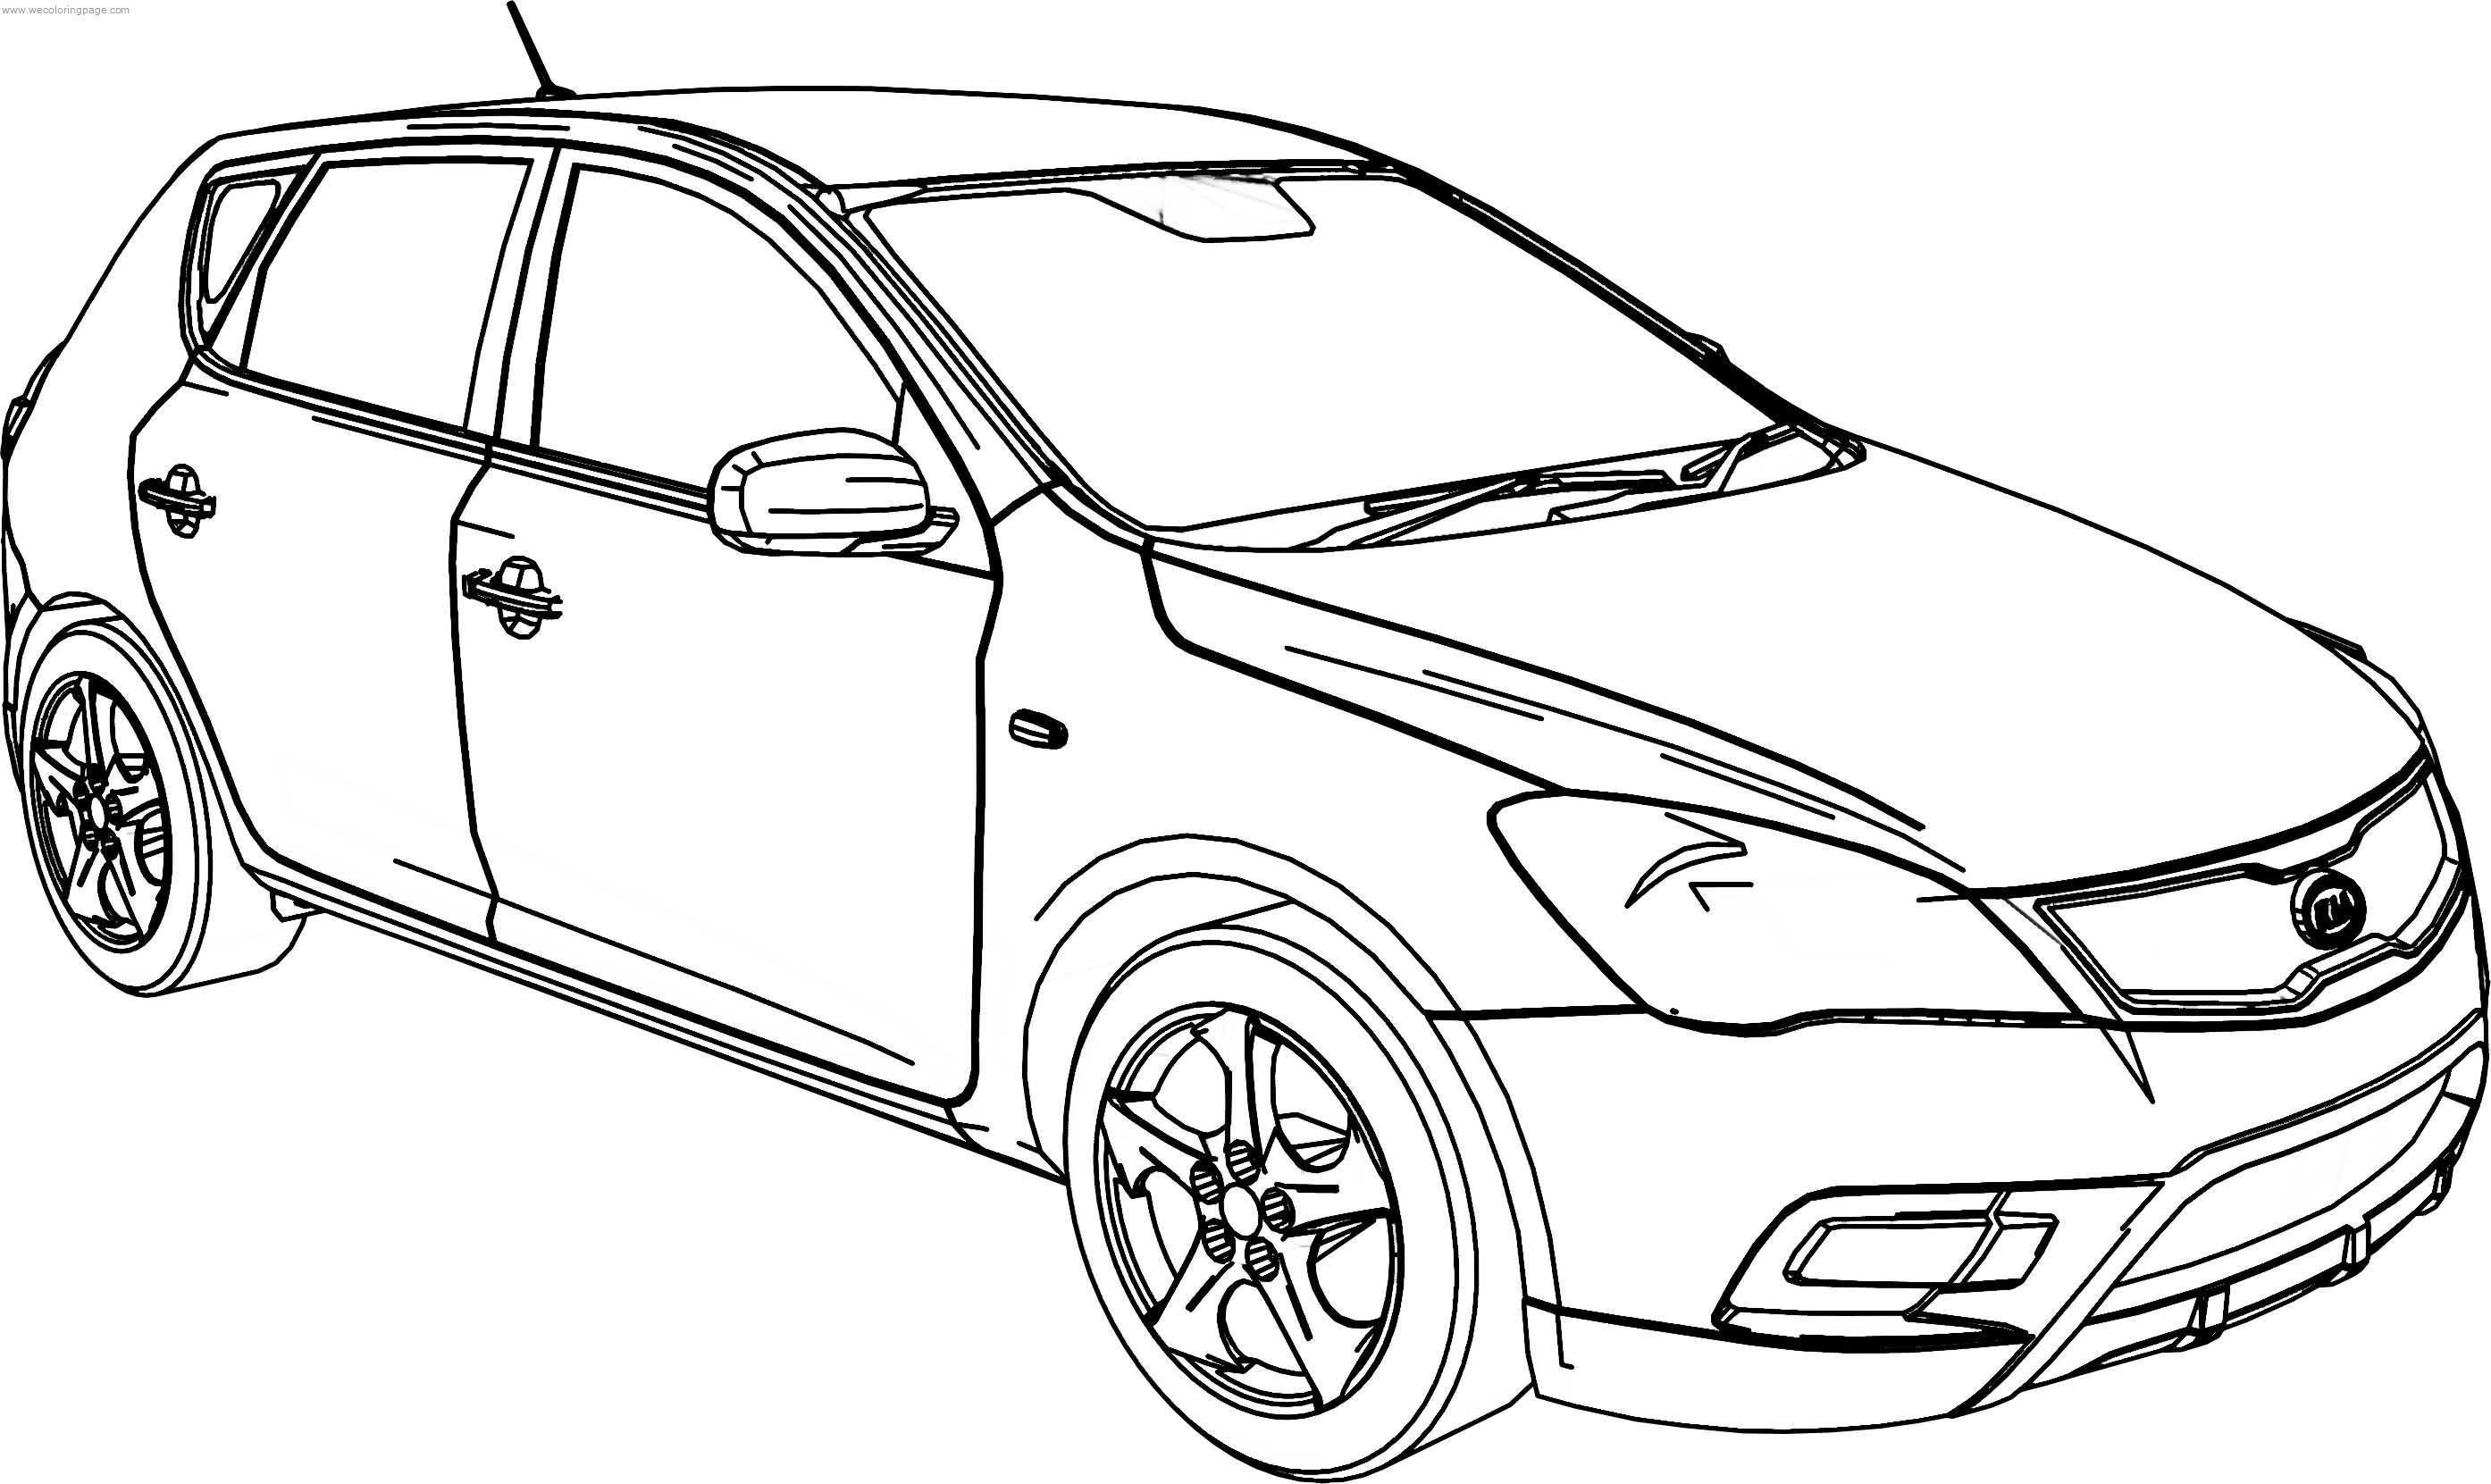 Kia Cee'd Resonably Priced Car Coloring Page